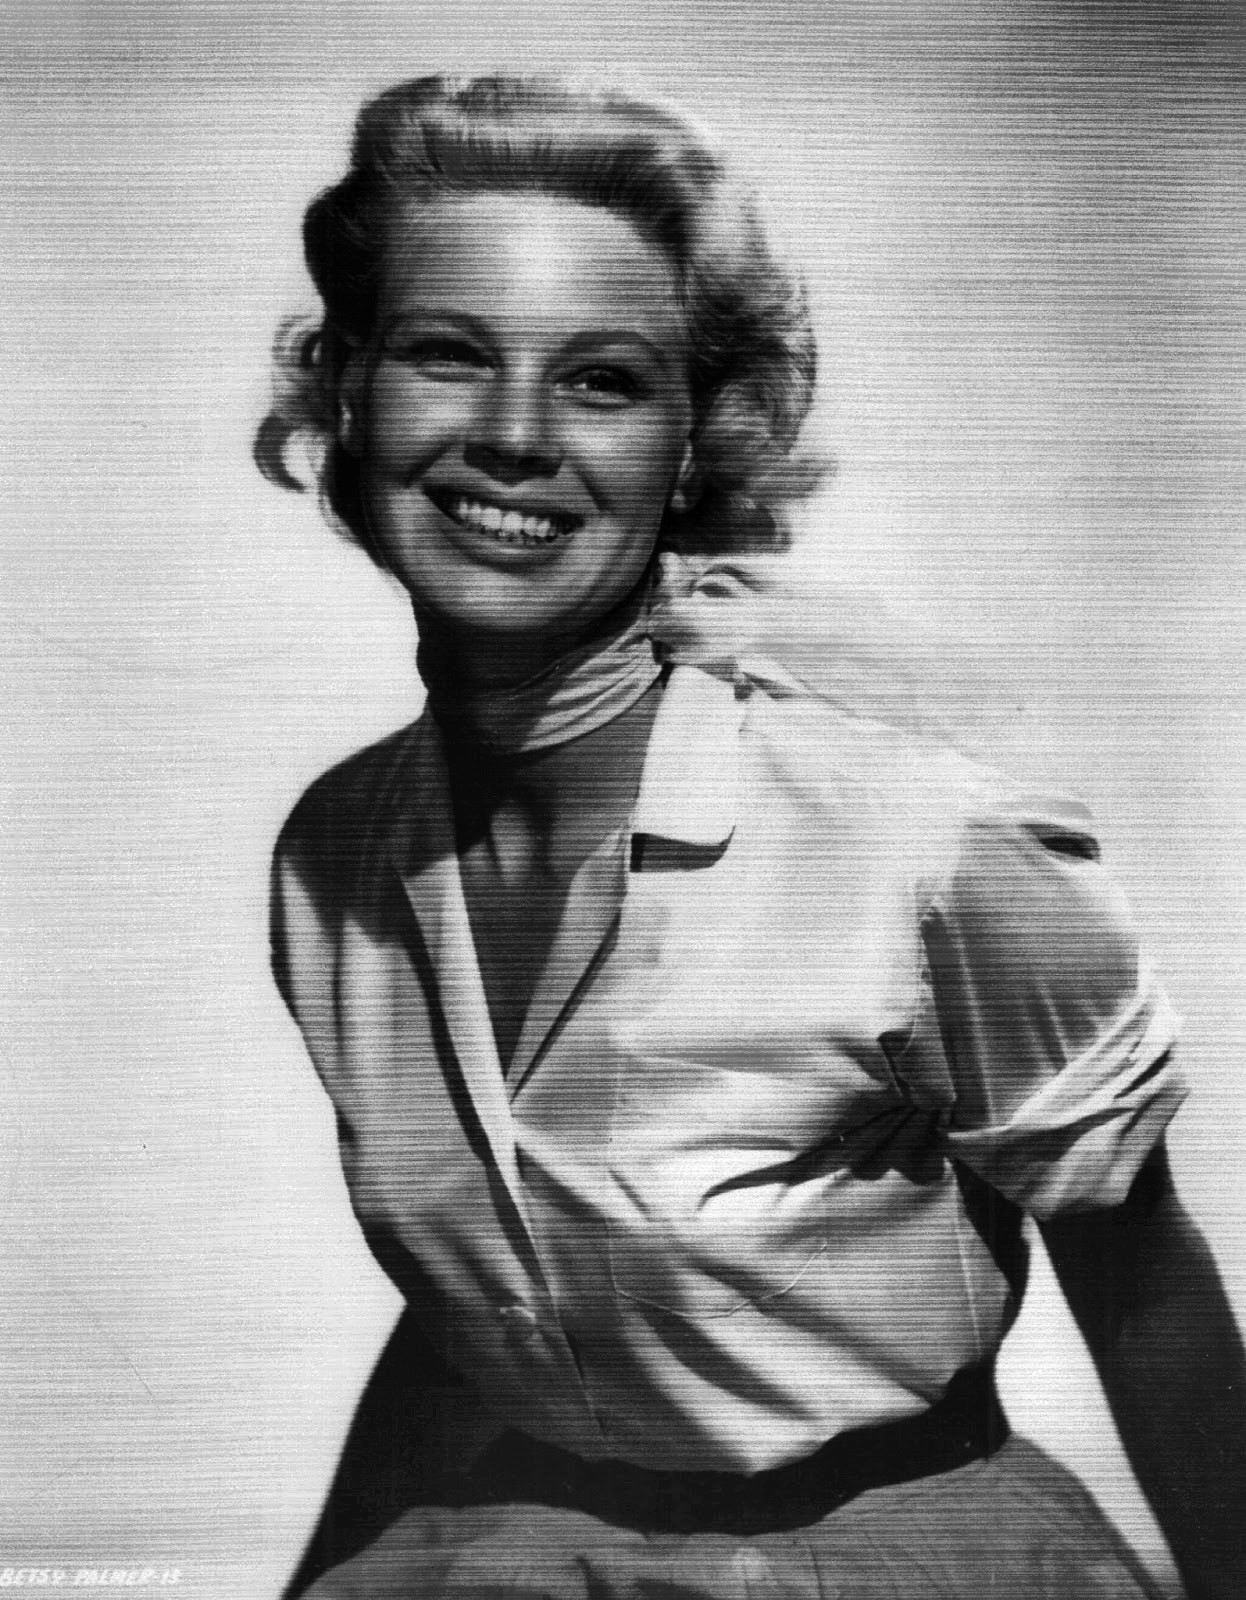 Betsy Palmer | Known people - famous people news and ...